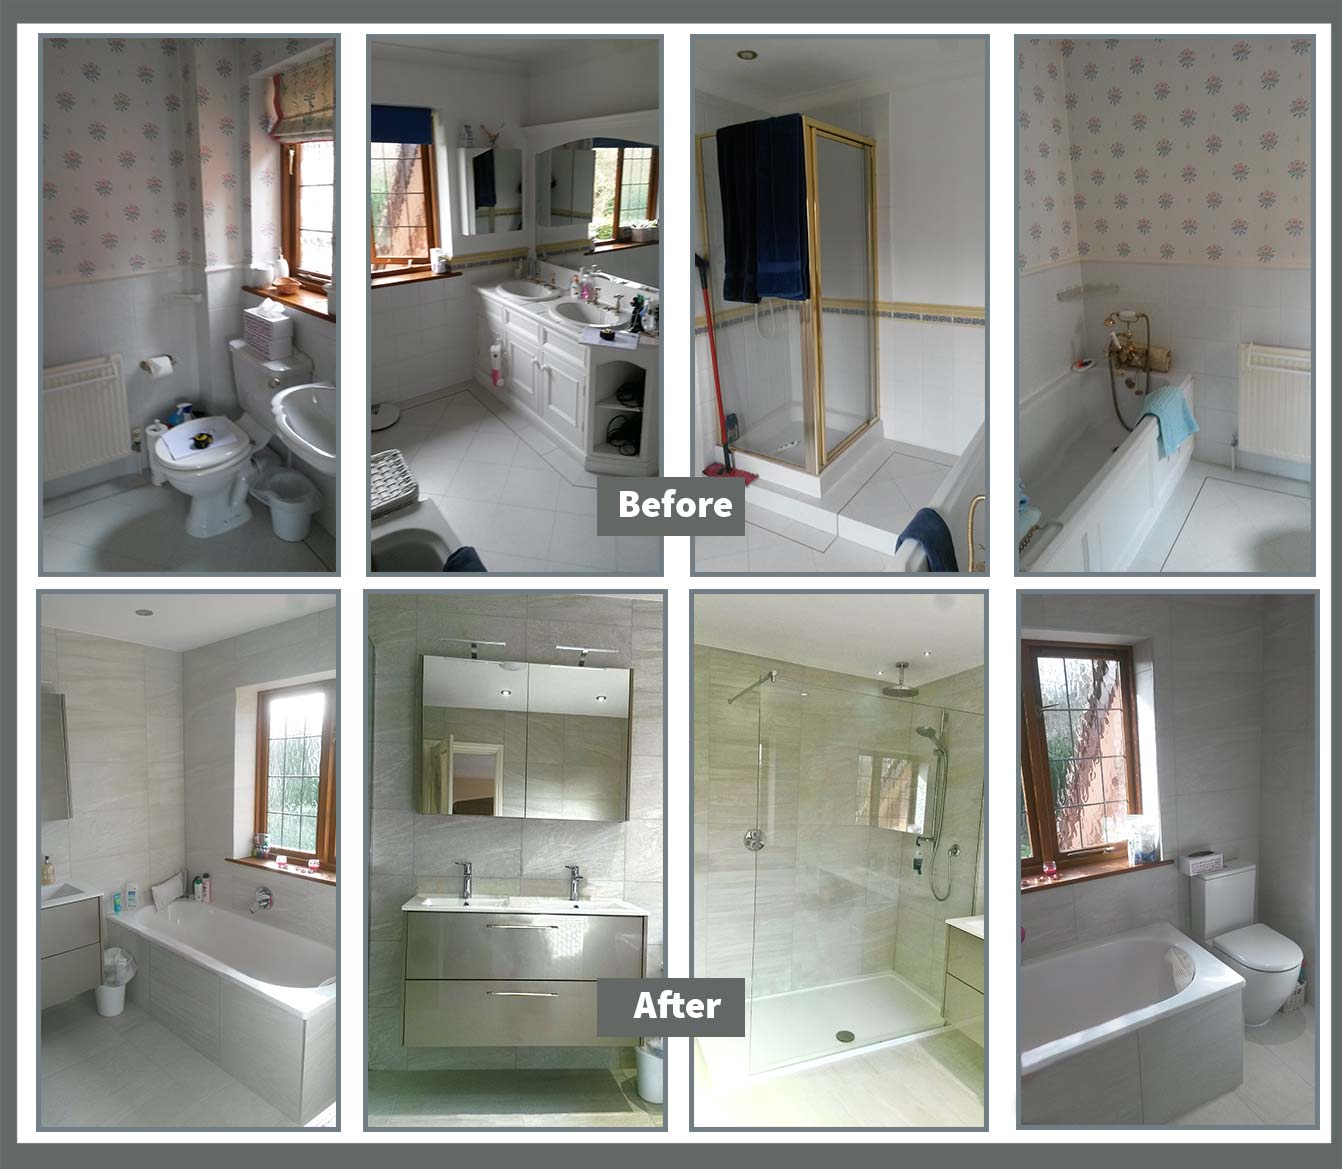 Before & After refurbishment